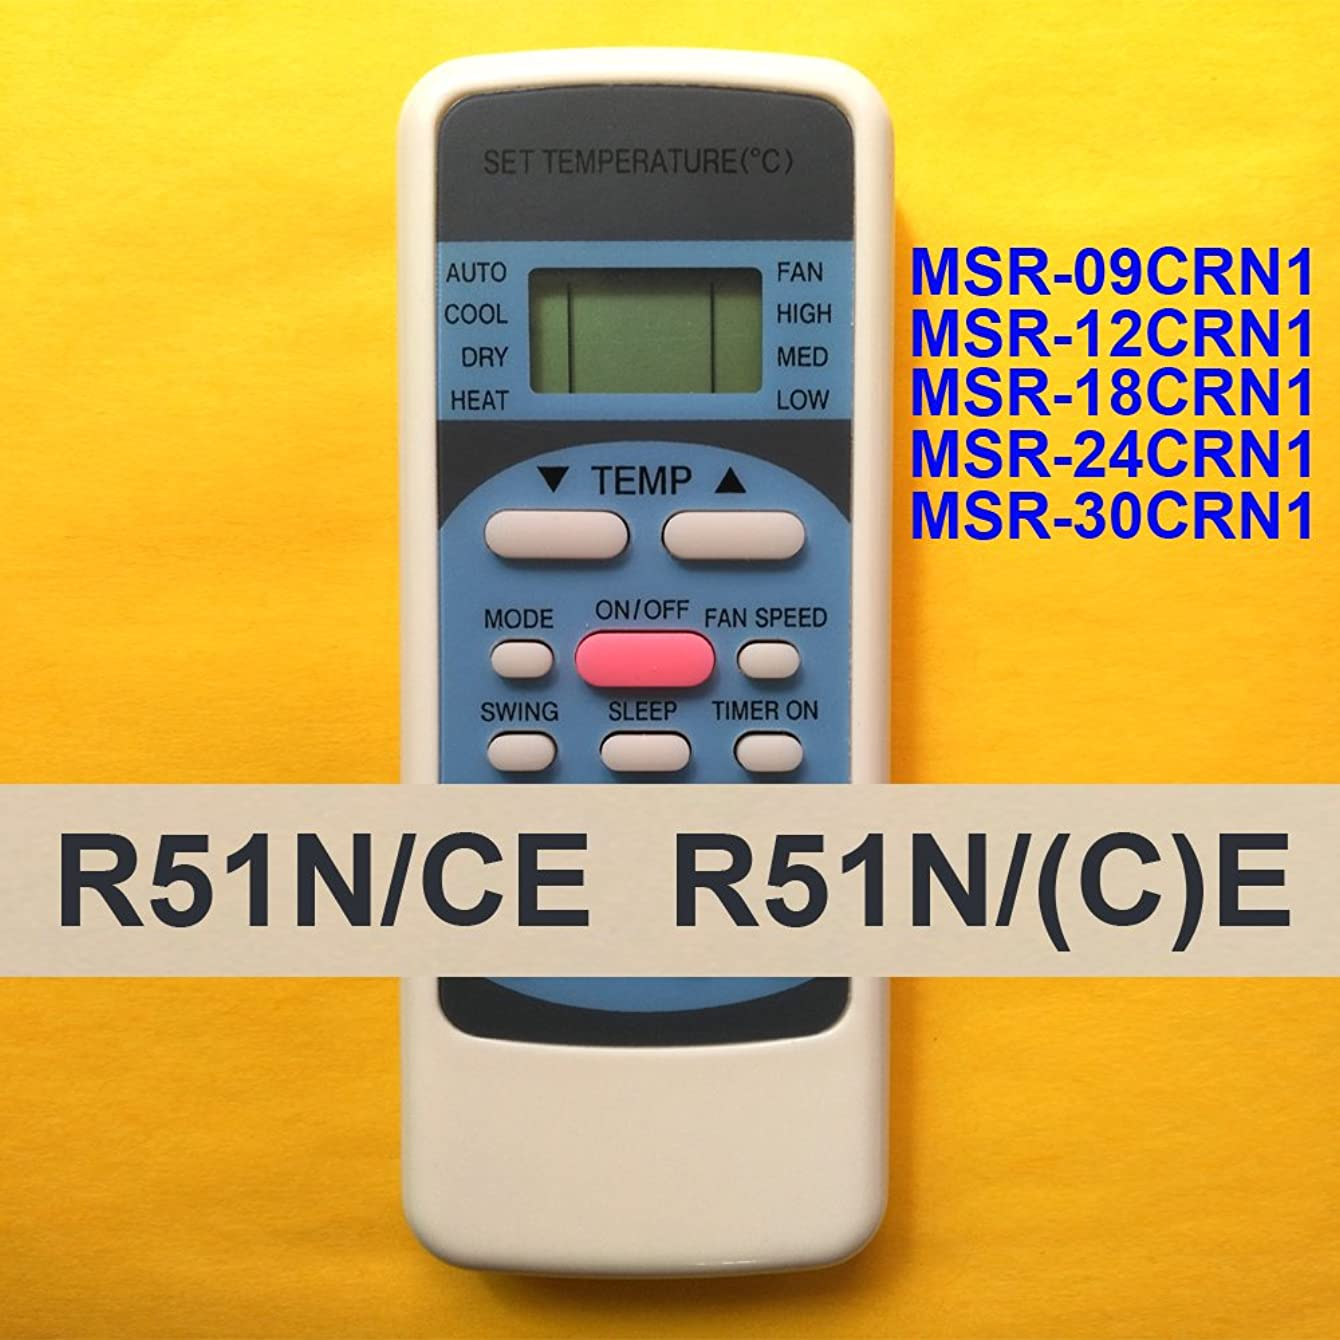 Replacement for Ecox Air Conditioner Remote Control Model Number: R51N/CE R51N/(C)E works for MSR-09CRN1 MSR-12CRN1 MSR-18CRN1 MSR-24CRN1 MSR-30CRN1